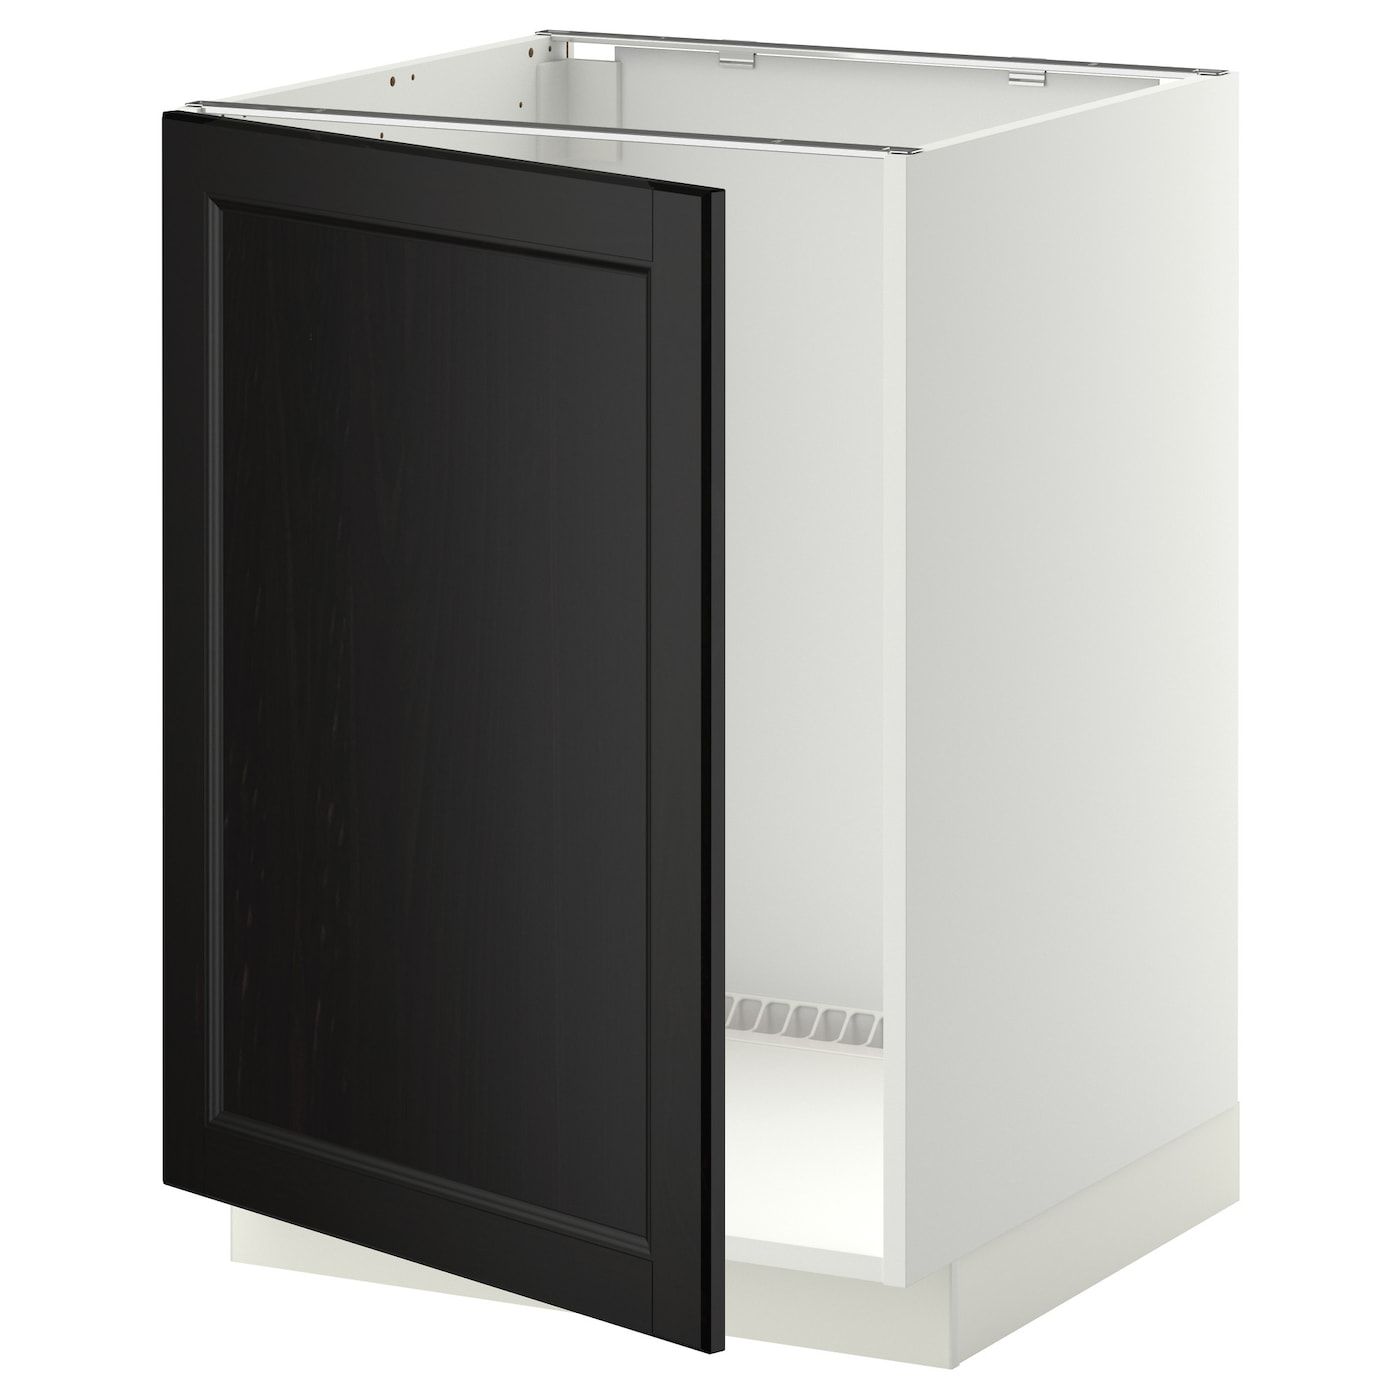 Metod base cabinet for sink white laxarby black brown for Black kitchen base cabinets